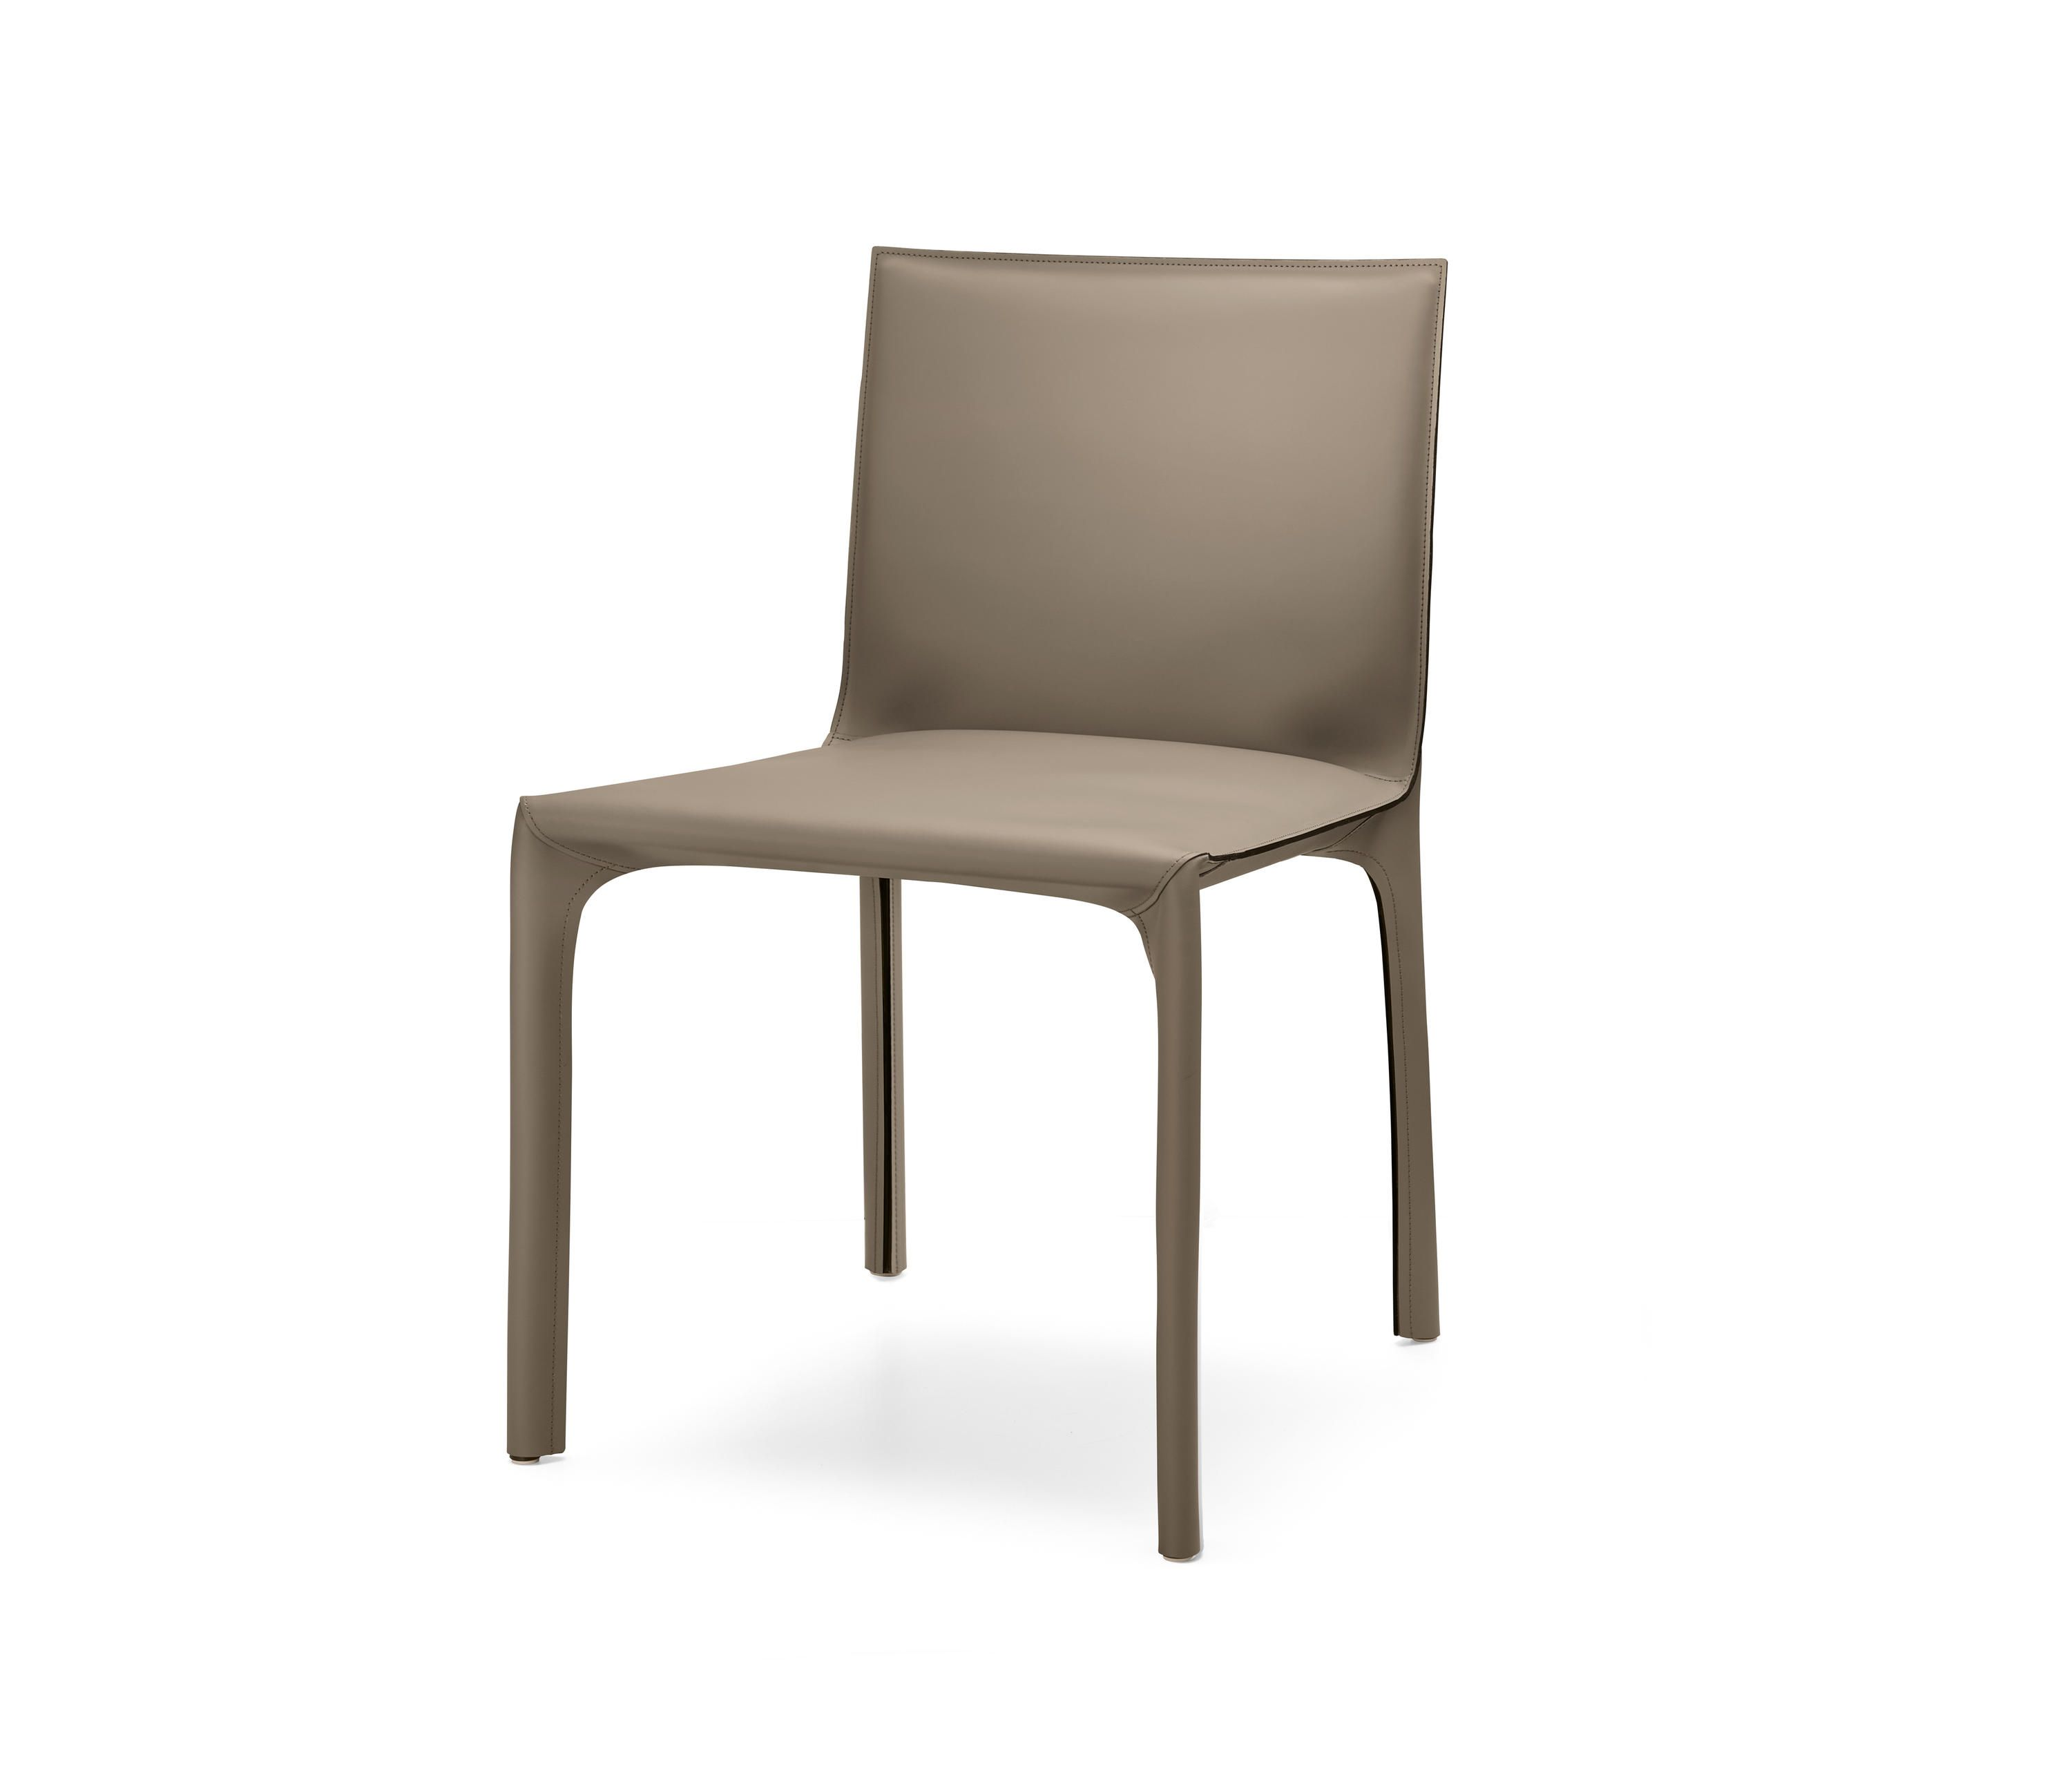 Saddle Chair By Walter Knoll Restaurant Chairs Eclectic Dining